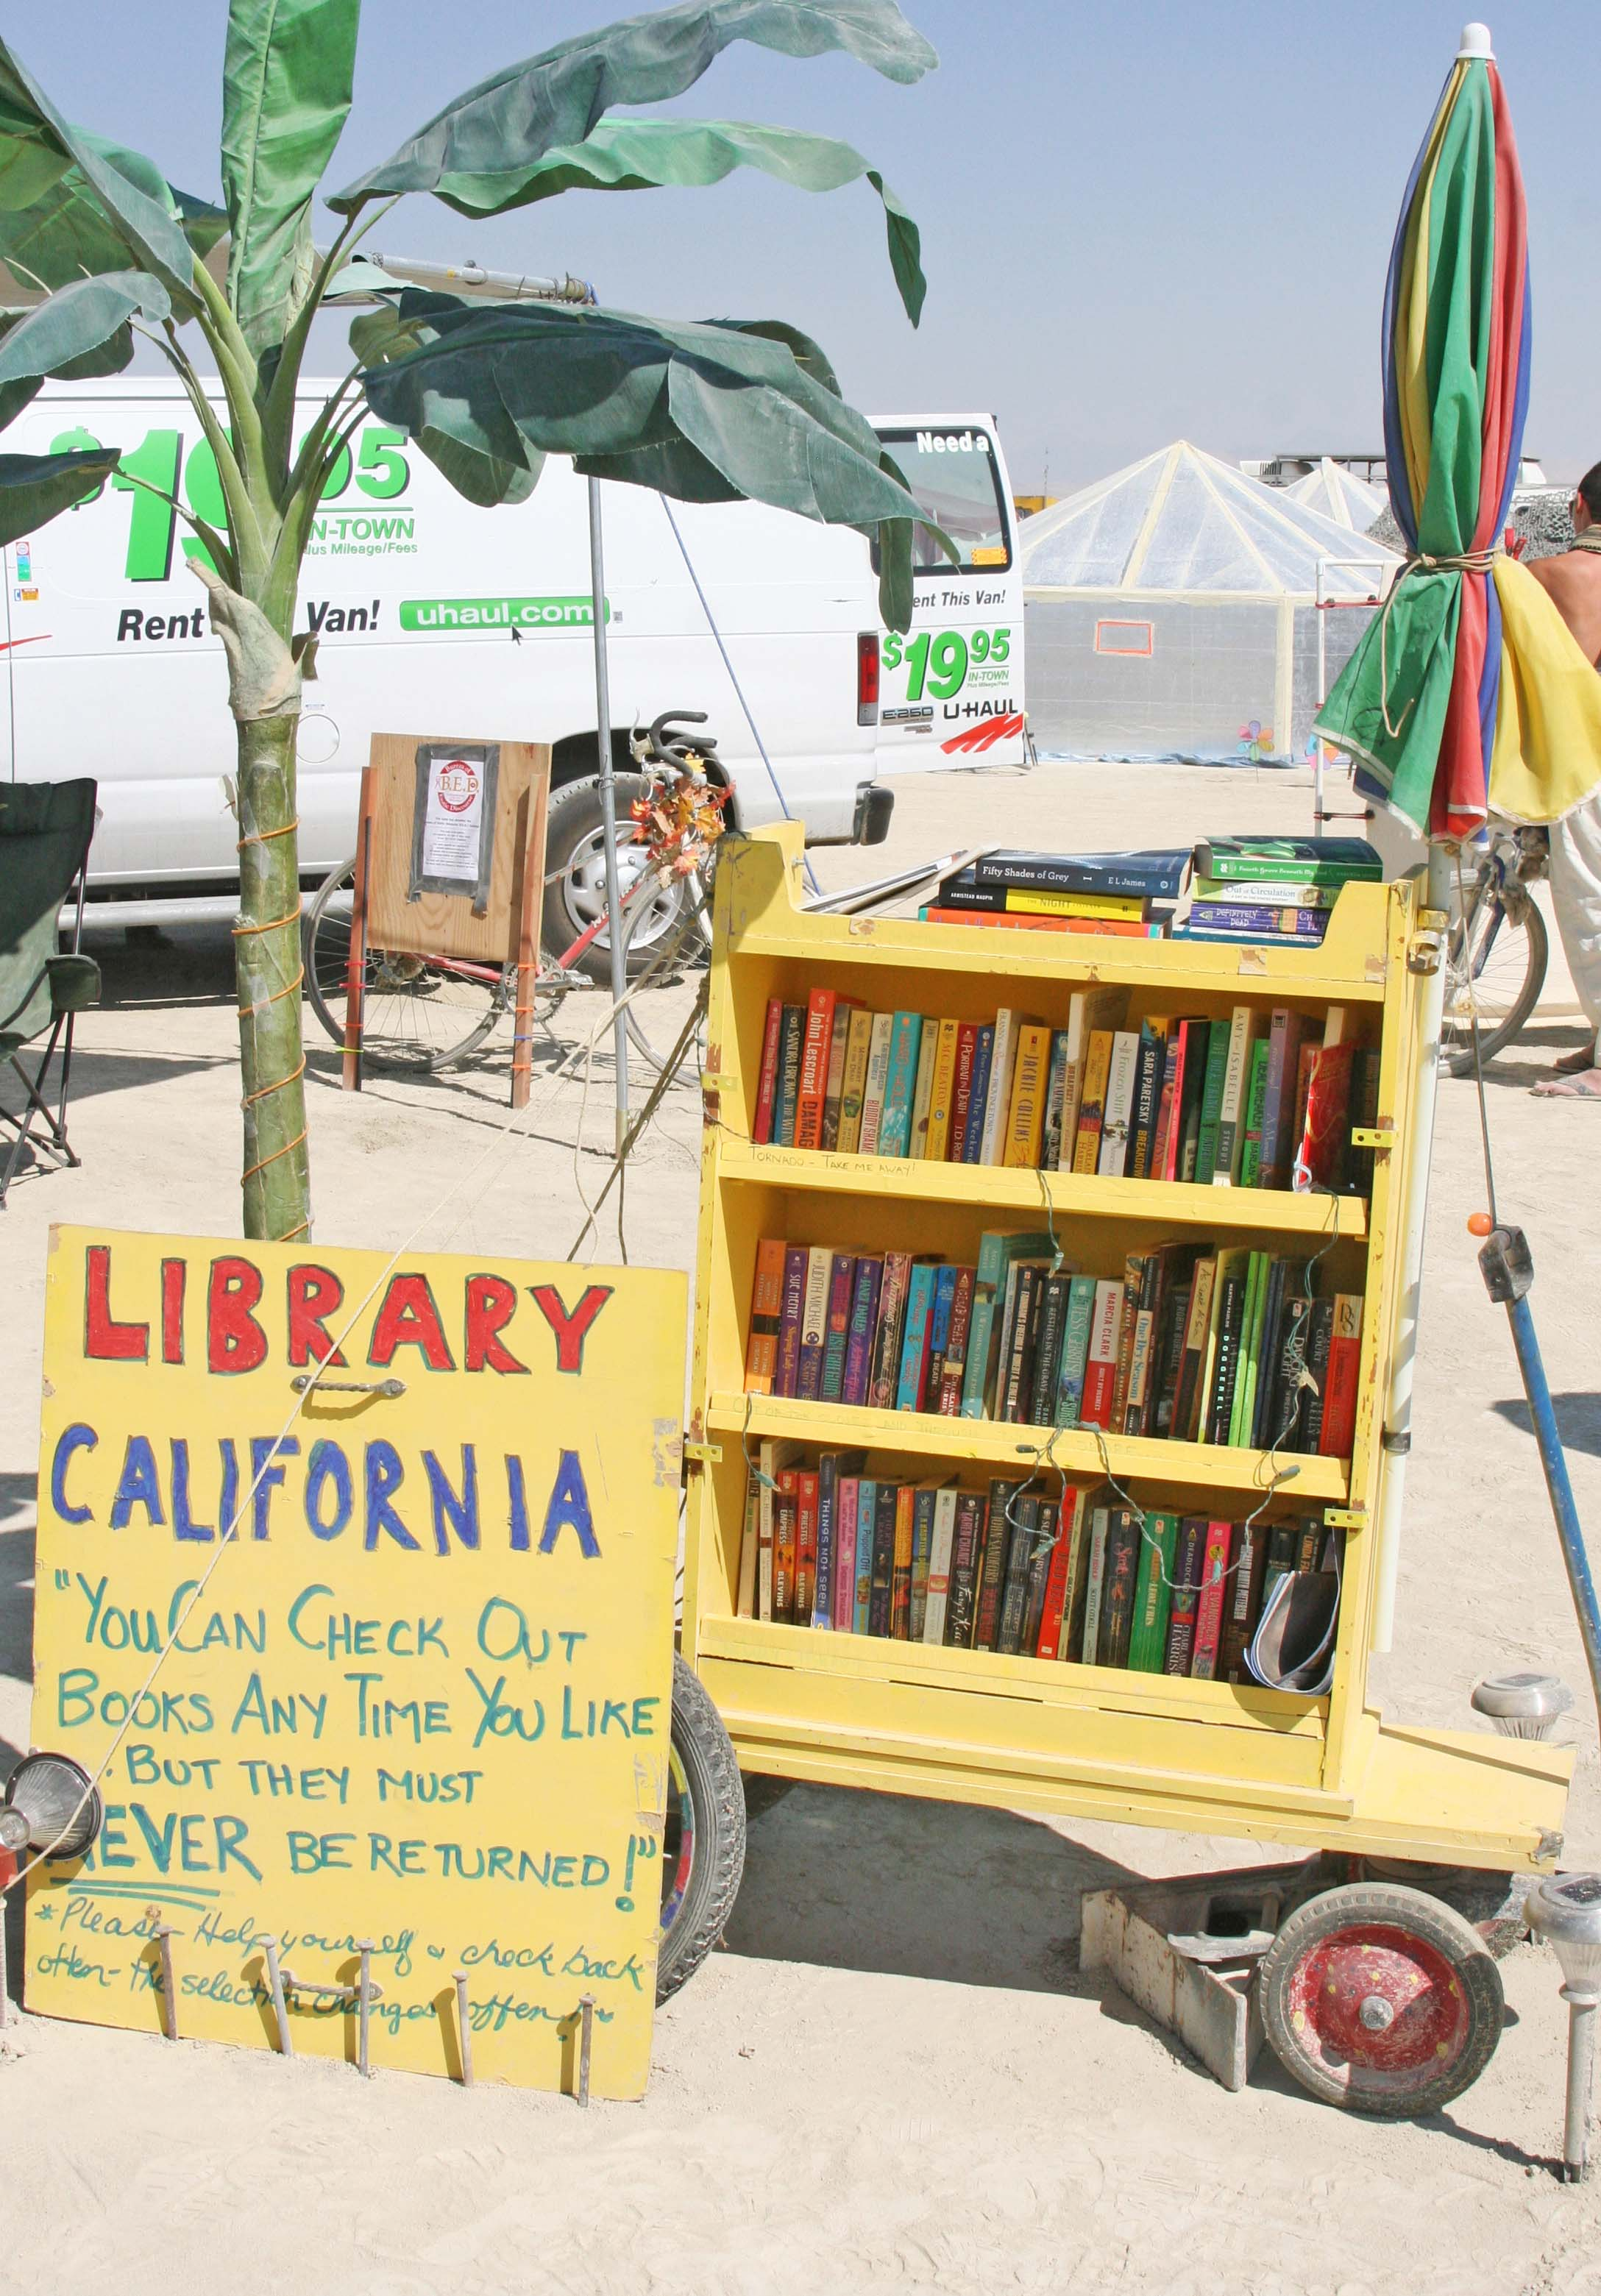 The California Library's form of gifting is giving away books, hundreds of them.